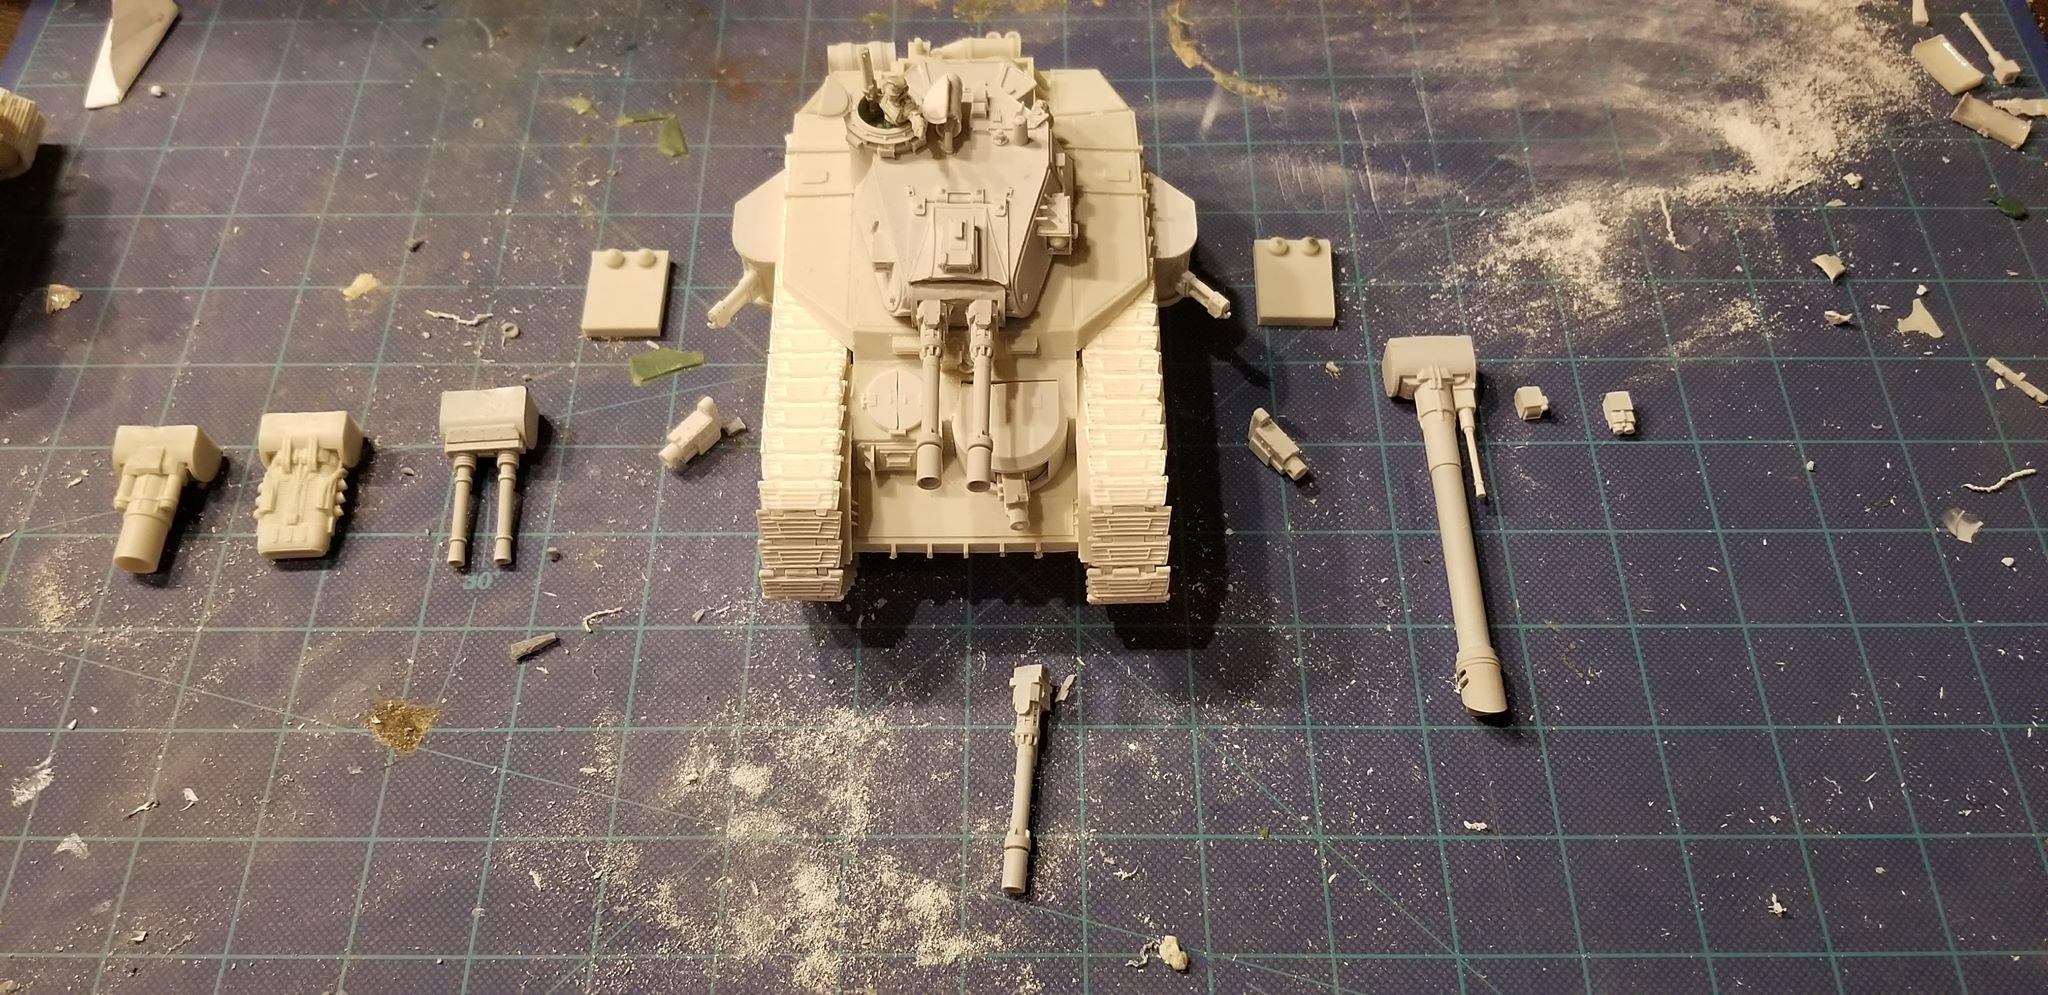 And a bit of a glamor shot.  If anyone else has these tanks and needs assembly advice, let me know!  I've got 6 more to assemble, and can post a guide